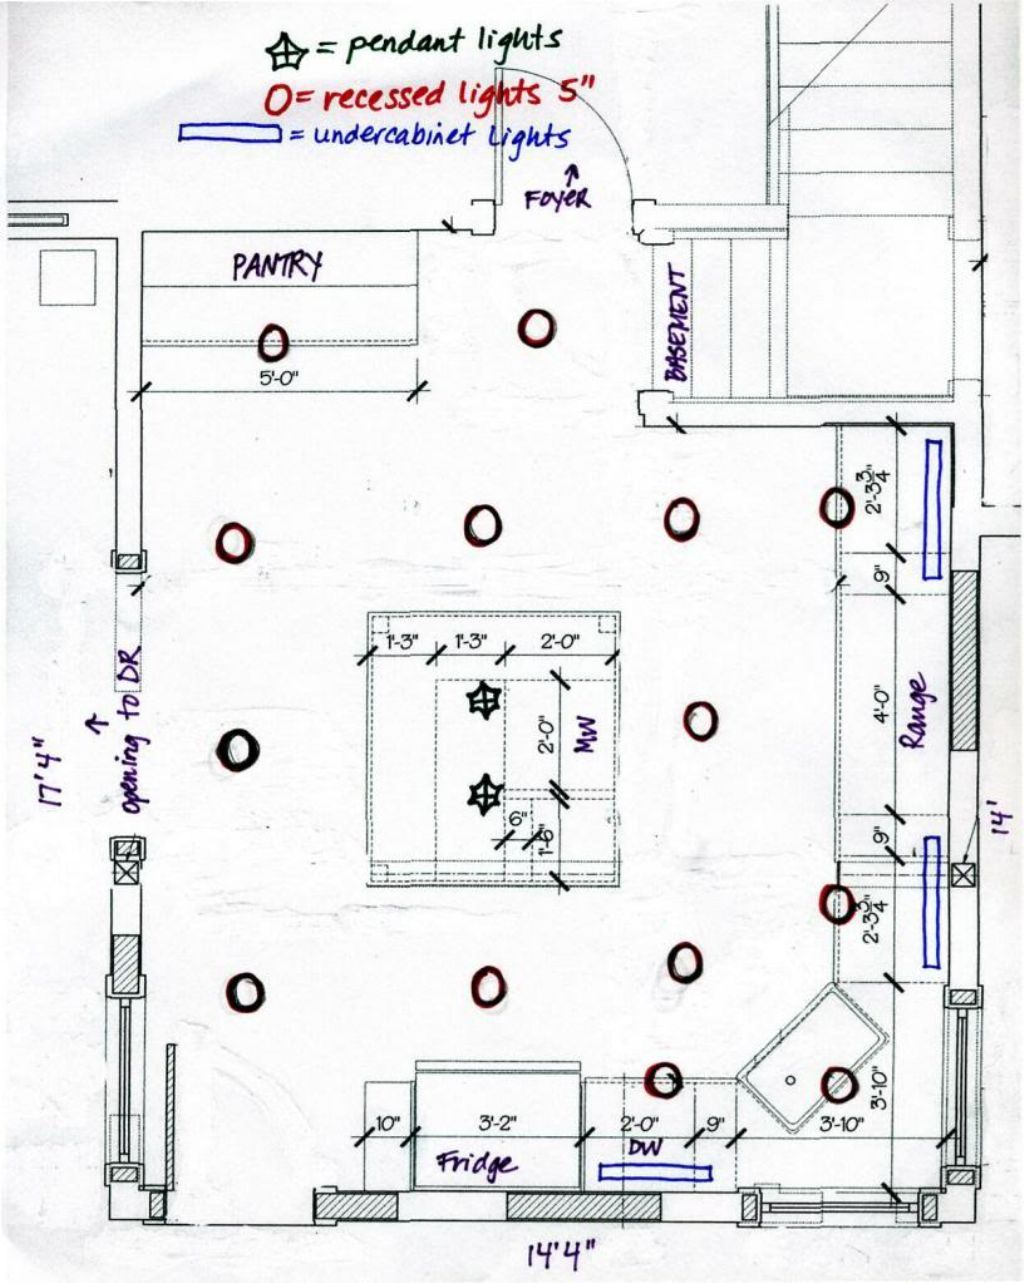 Recessed lighting layout diagram lighting info Kitchen lighting design help